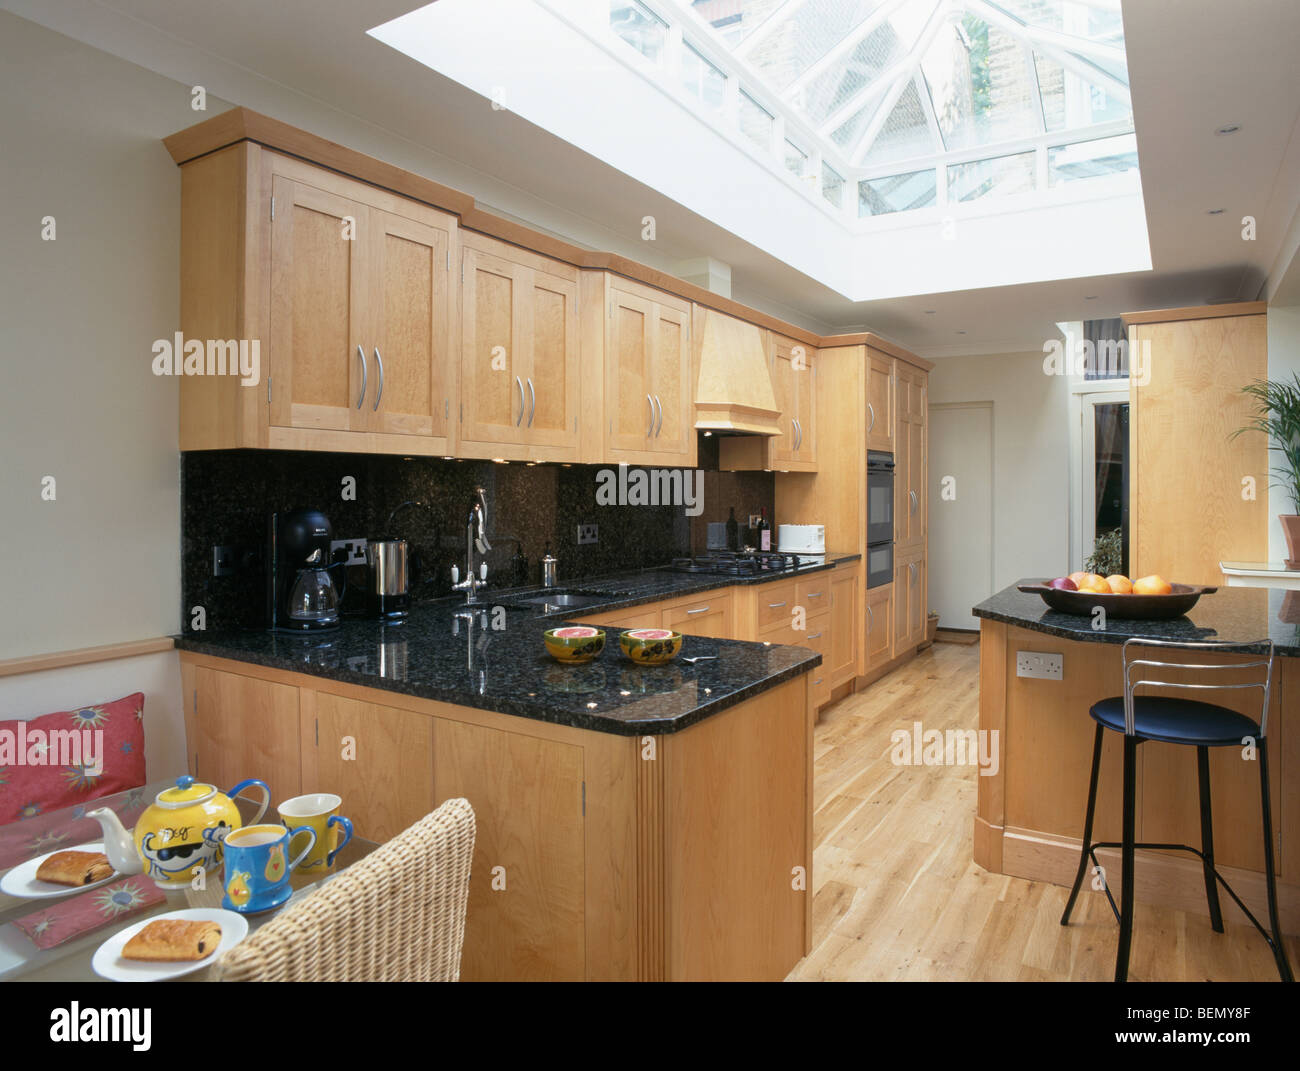 Large Skylight In Modern Kitchen Extension With Wooden Flooring And Pale  Wood Fitted Units With Granite